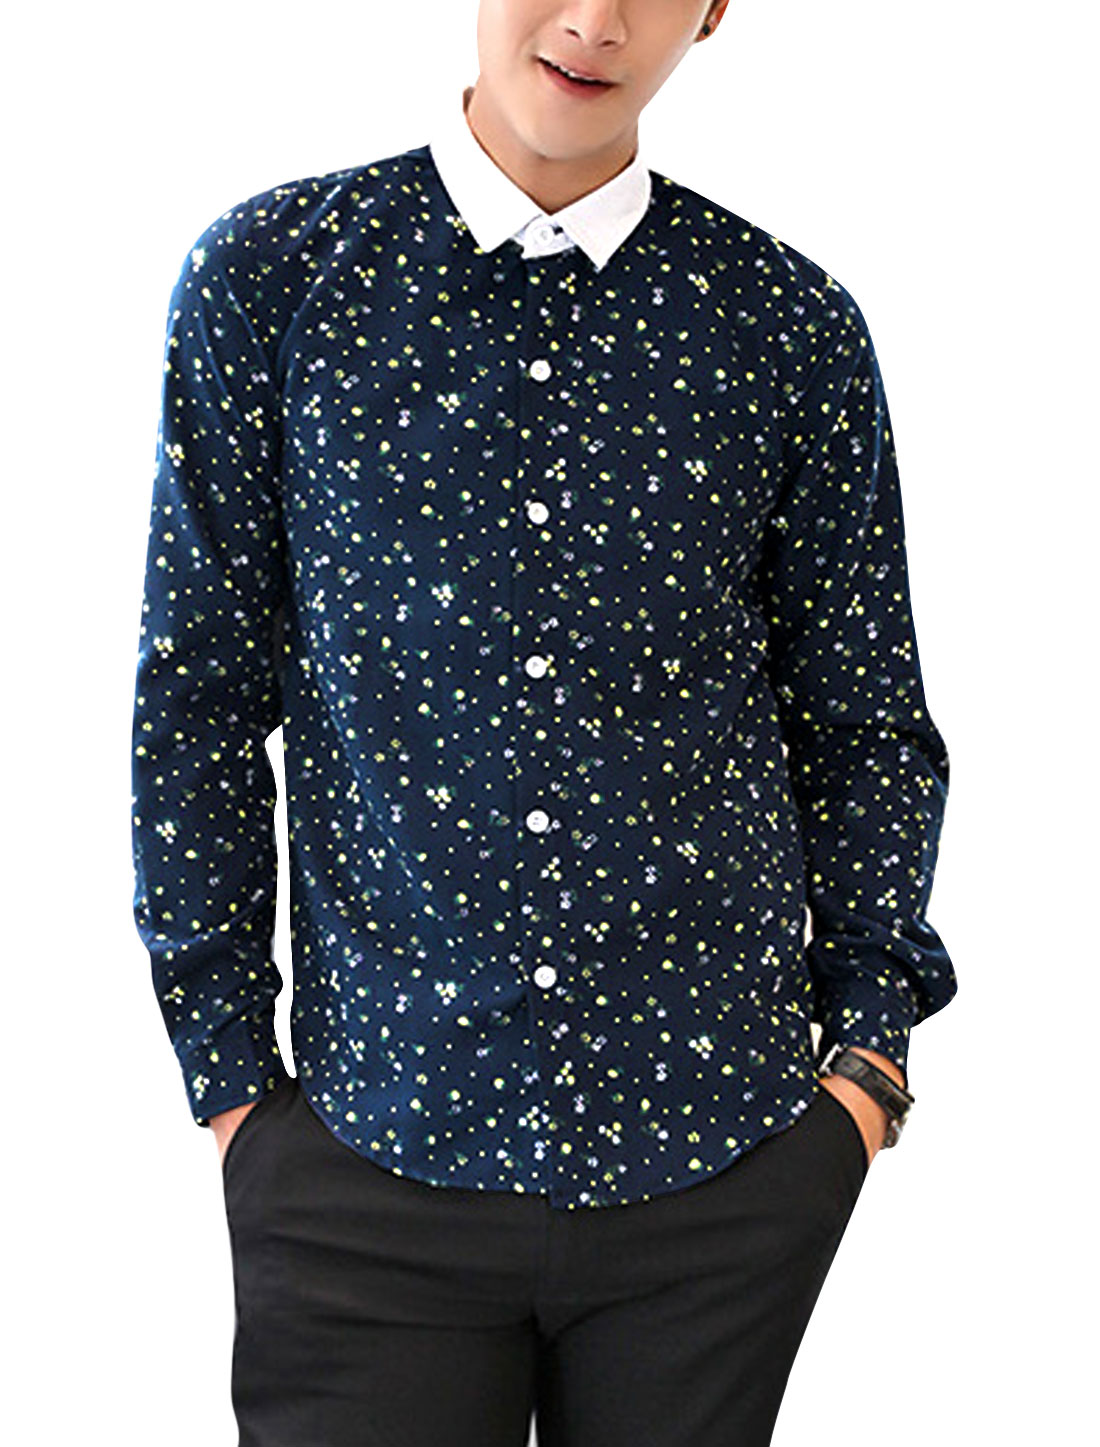 Men Contrast Point Collar All-over Floral Print Fashion Shirt Navy Blue M